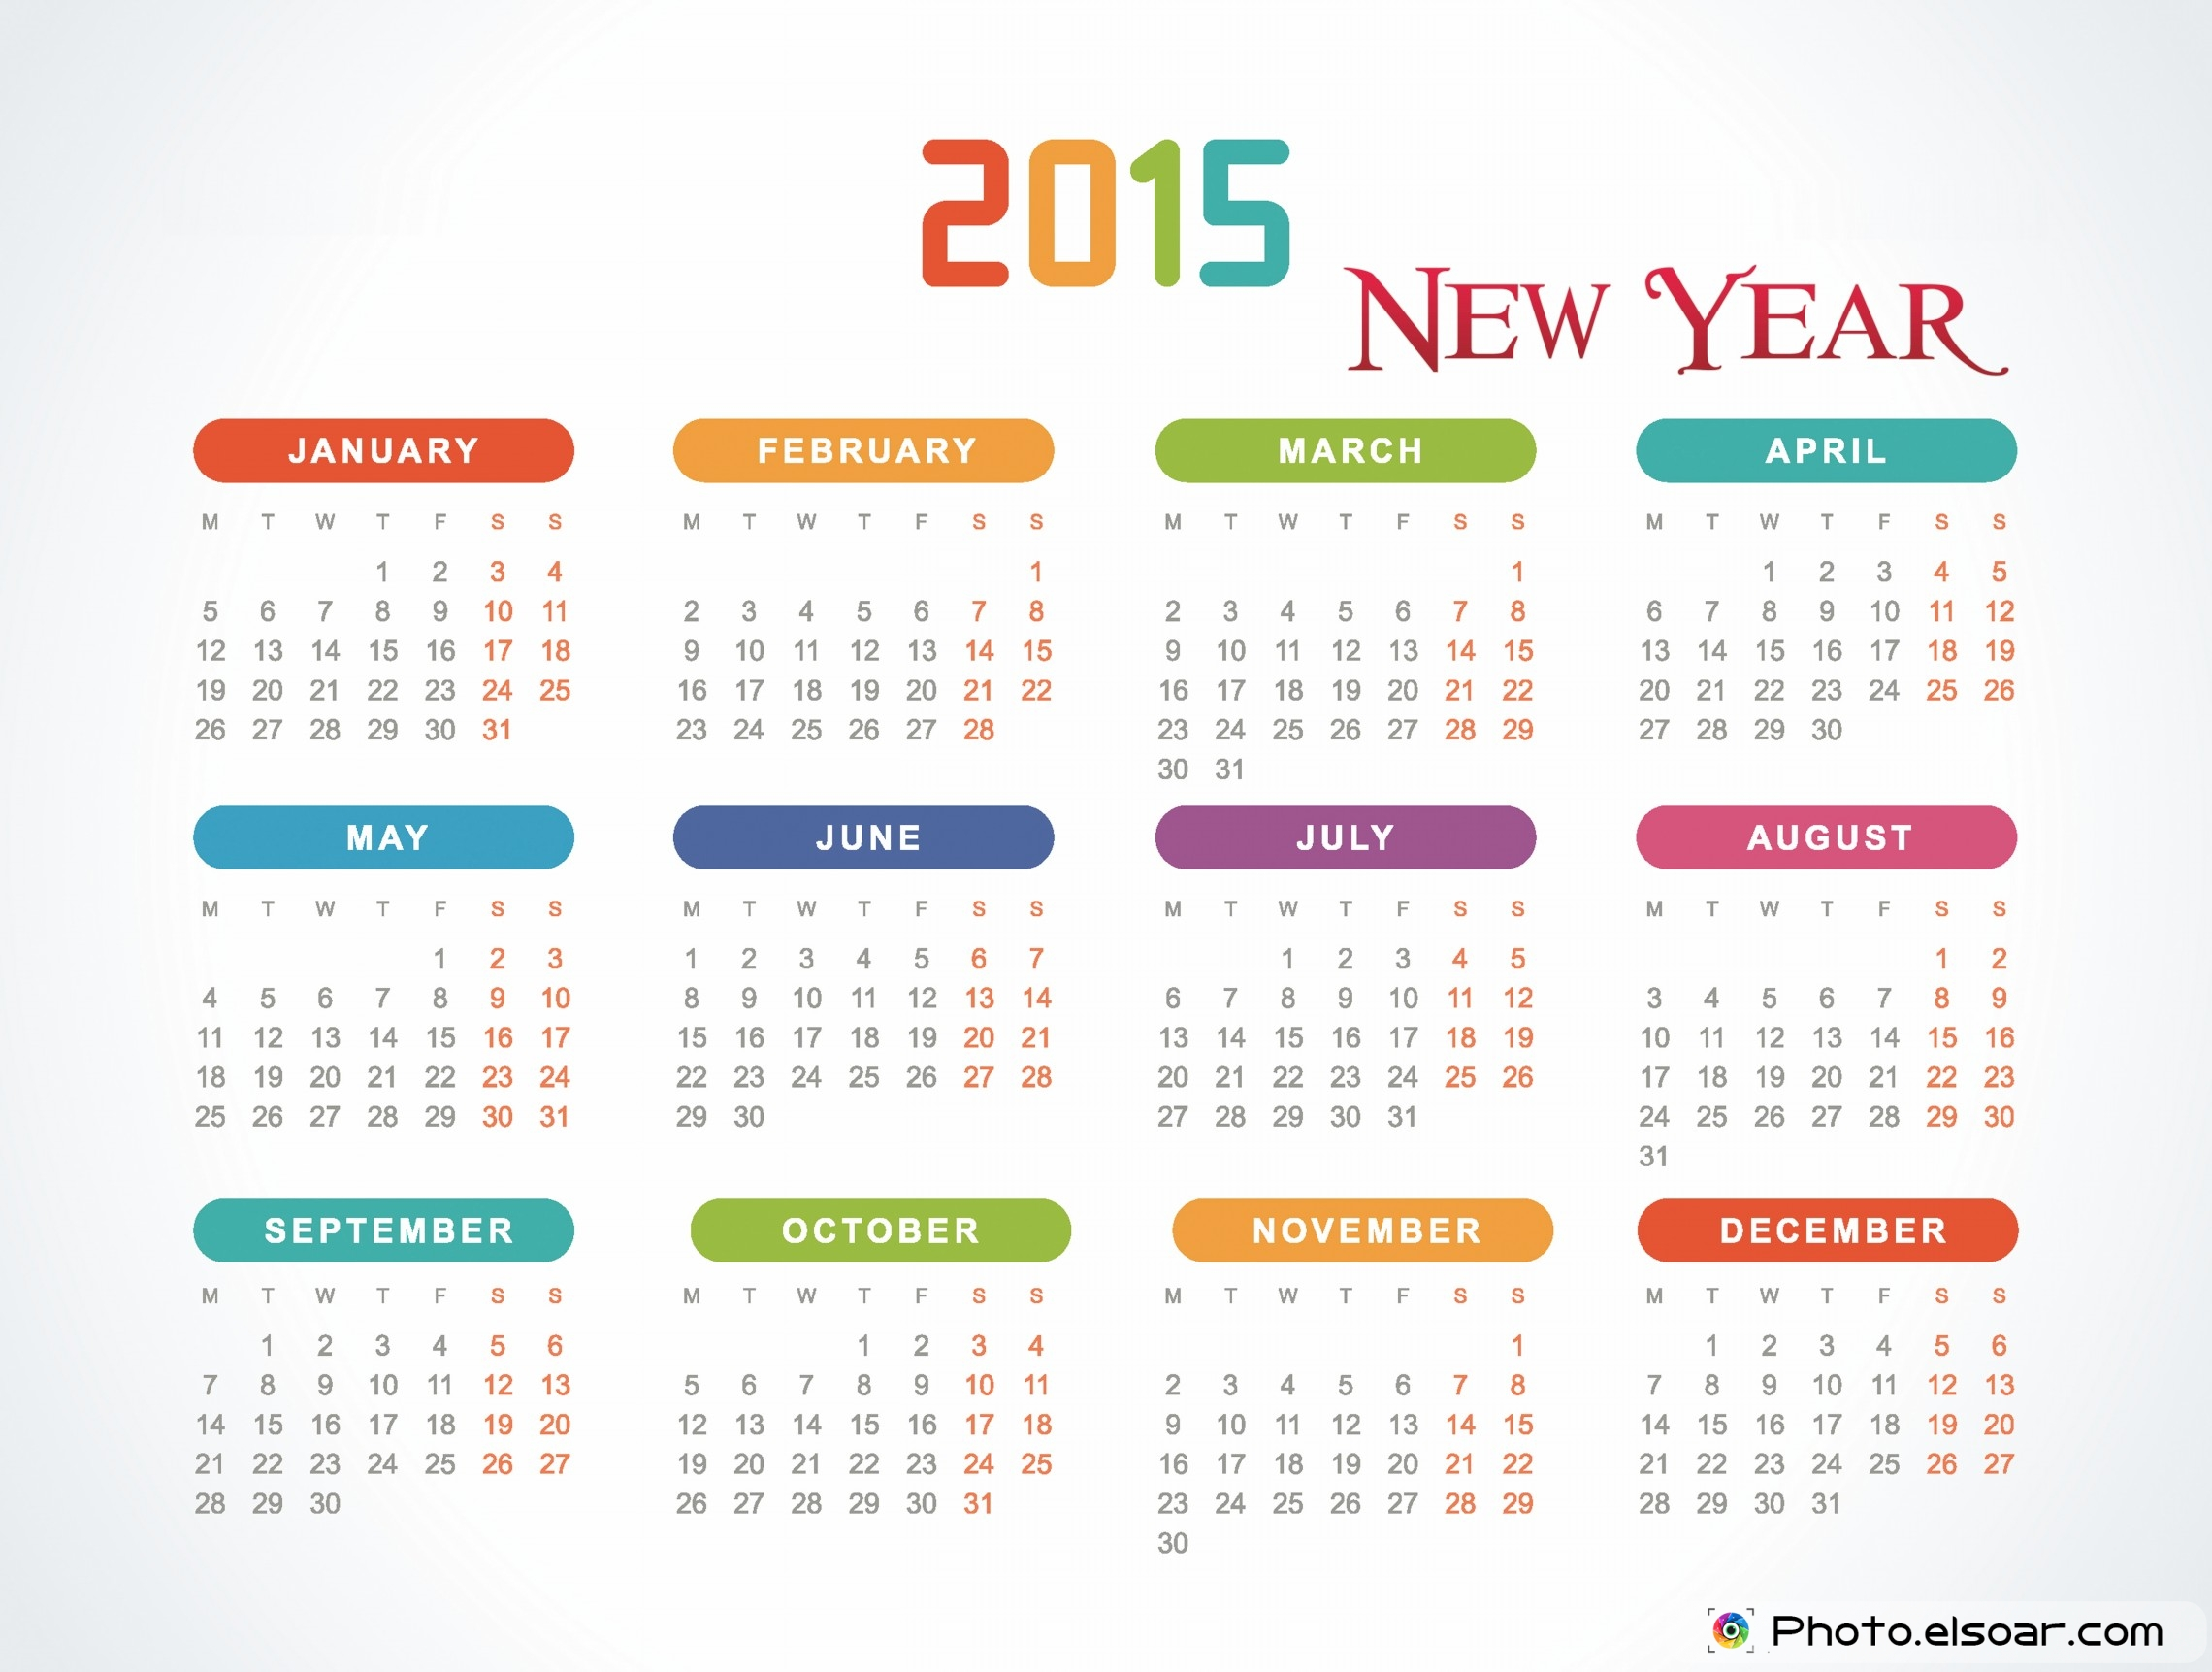 25 Beautiful New Year Calendars 2015 | ForestWonders